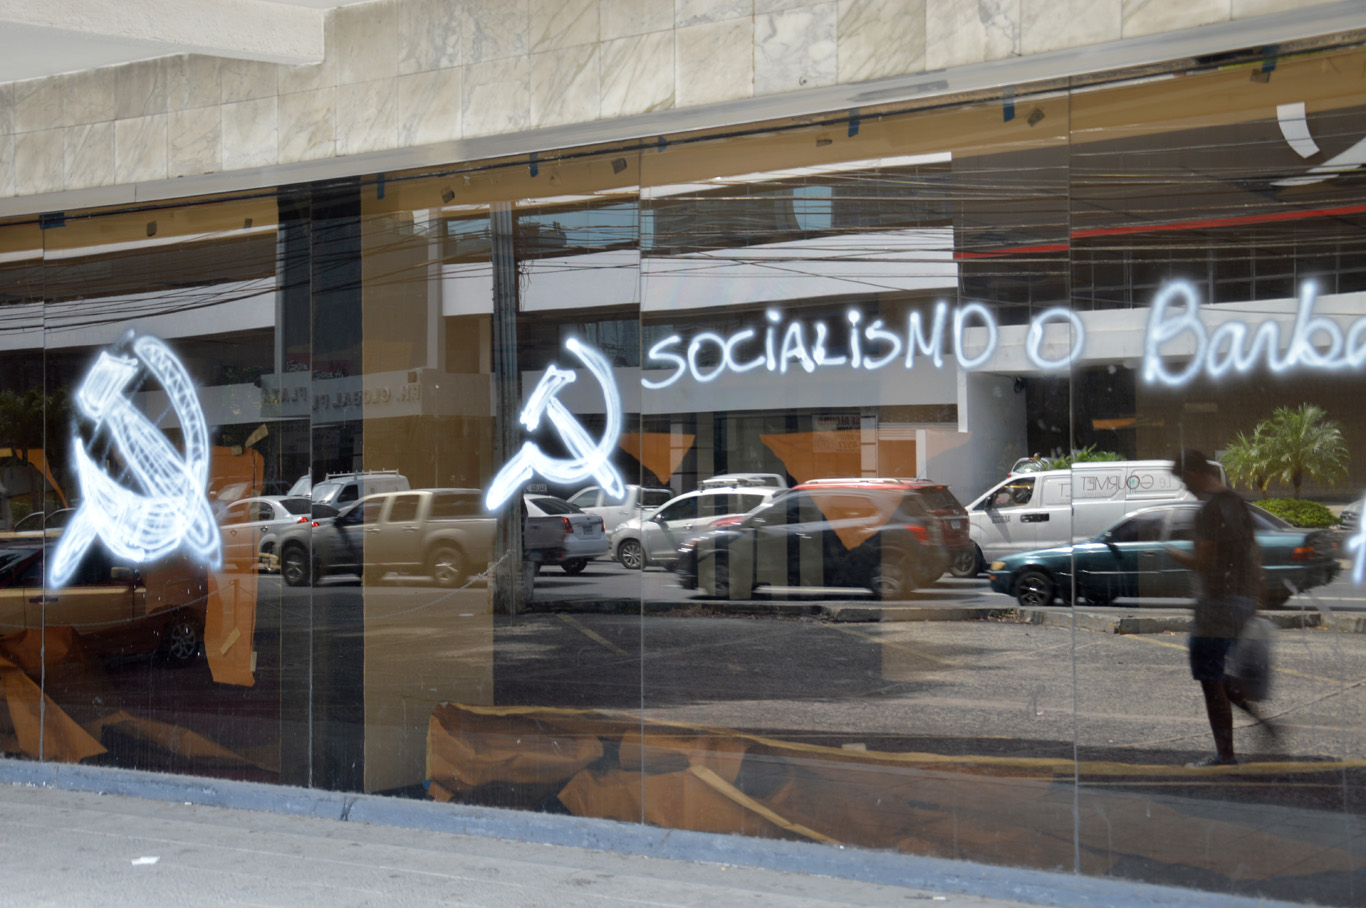 Socialism is barbaric - graffiti on one of the glass buildings